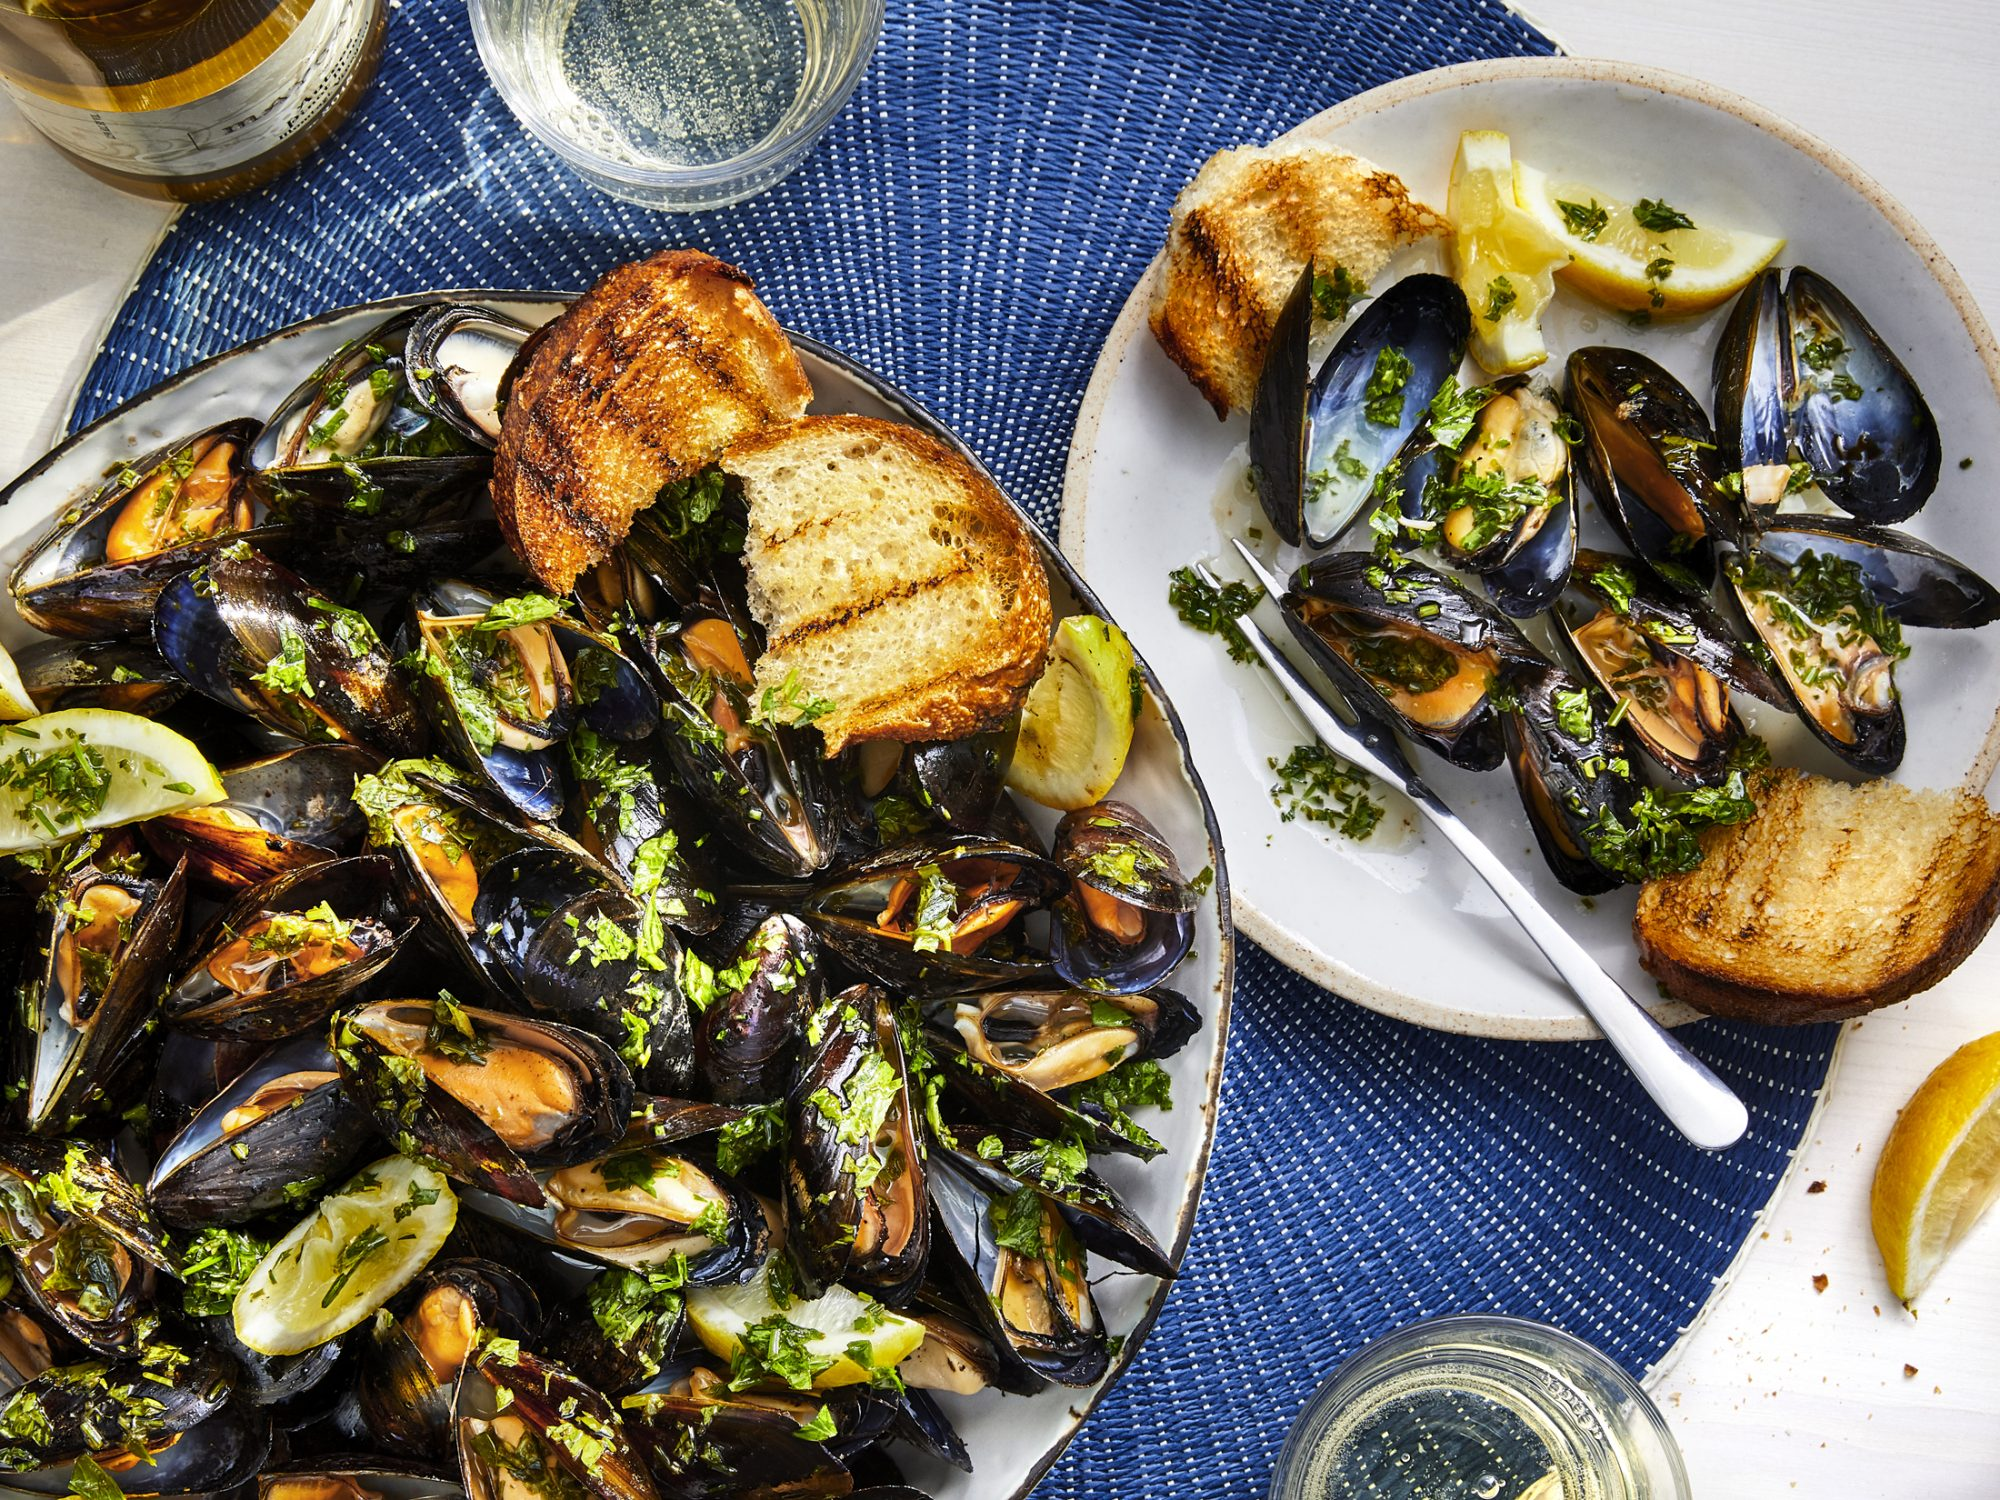 mr-Easy Smoked Mussels with Garlic Butter